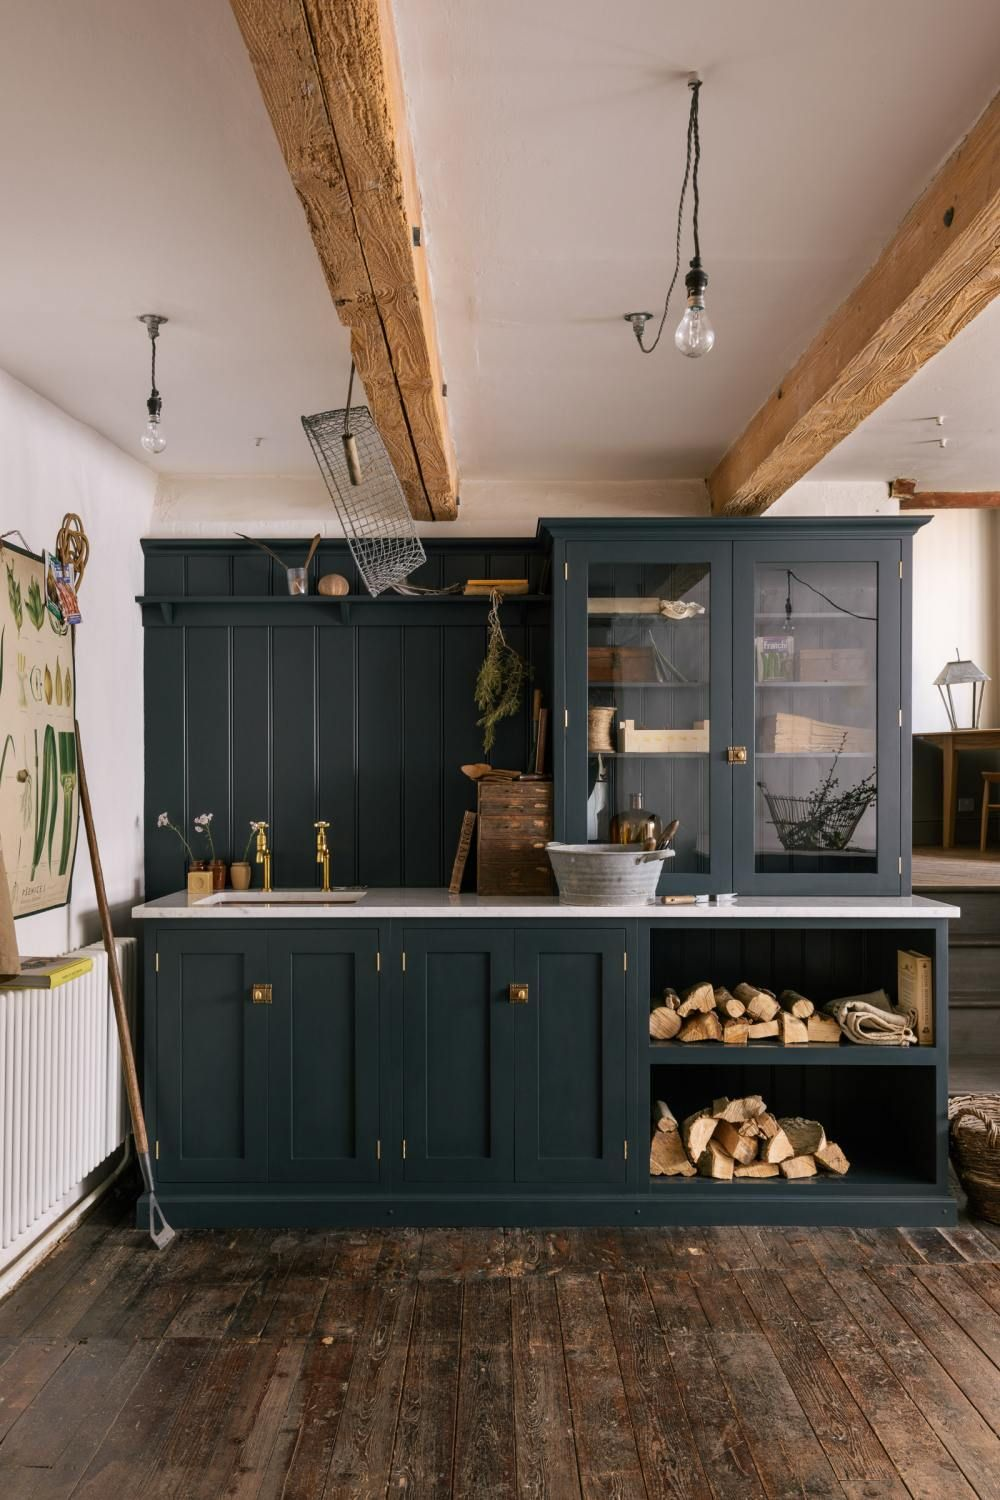 Shaker Kitchens by deVOL - Handmade Painted English Kitchens ...